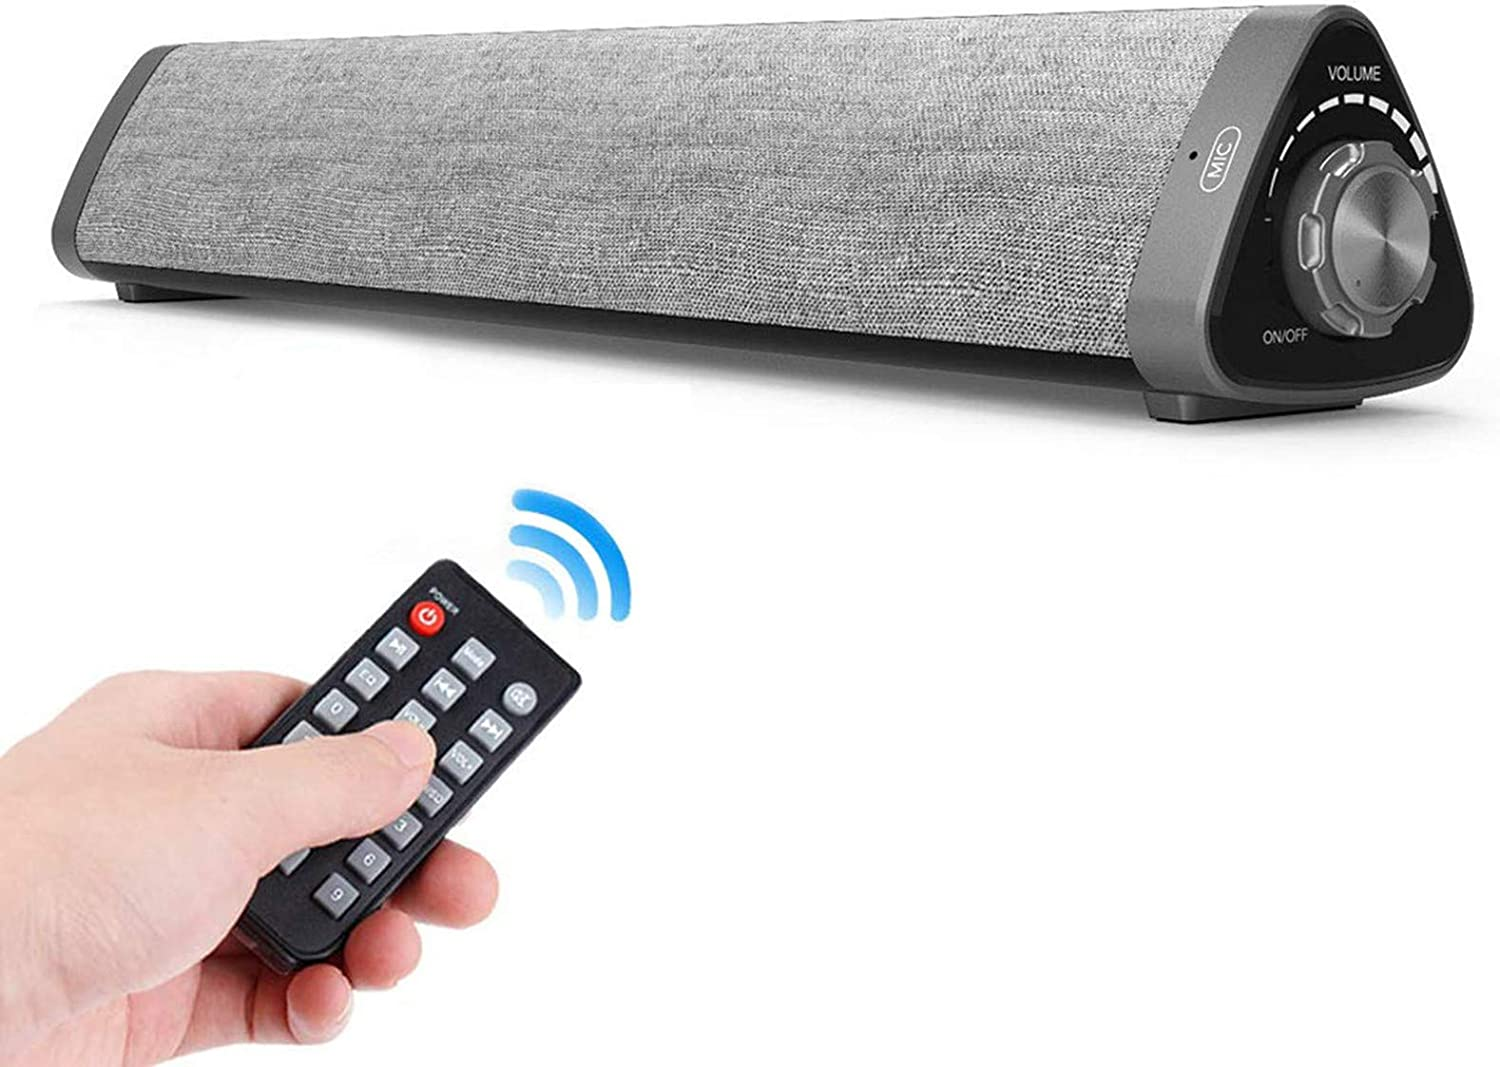 Soundbar, TOPROAD Wired and Wireless Home Theater Bluetooth Speaker Bar with Remote Control, TF Card- Surround Sound Bar for PC/Phones/Tablets, 2 X 5W Compact Speaker